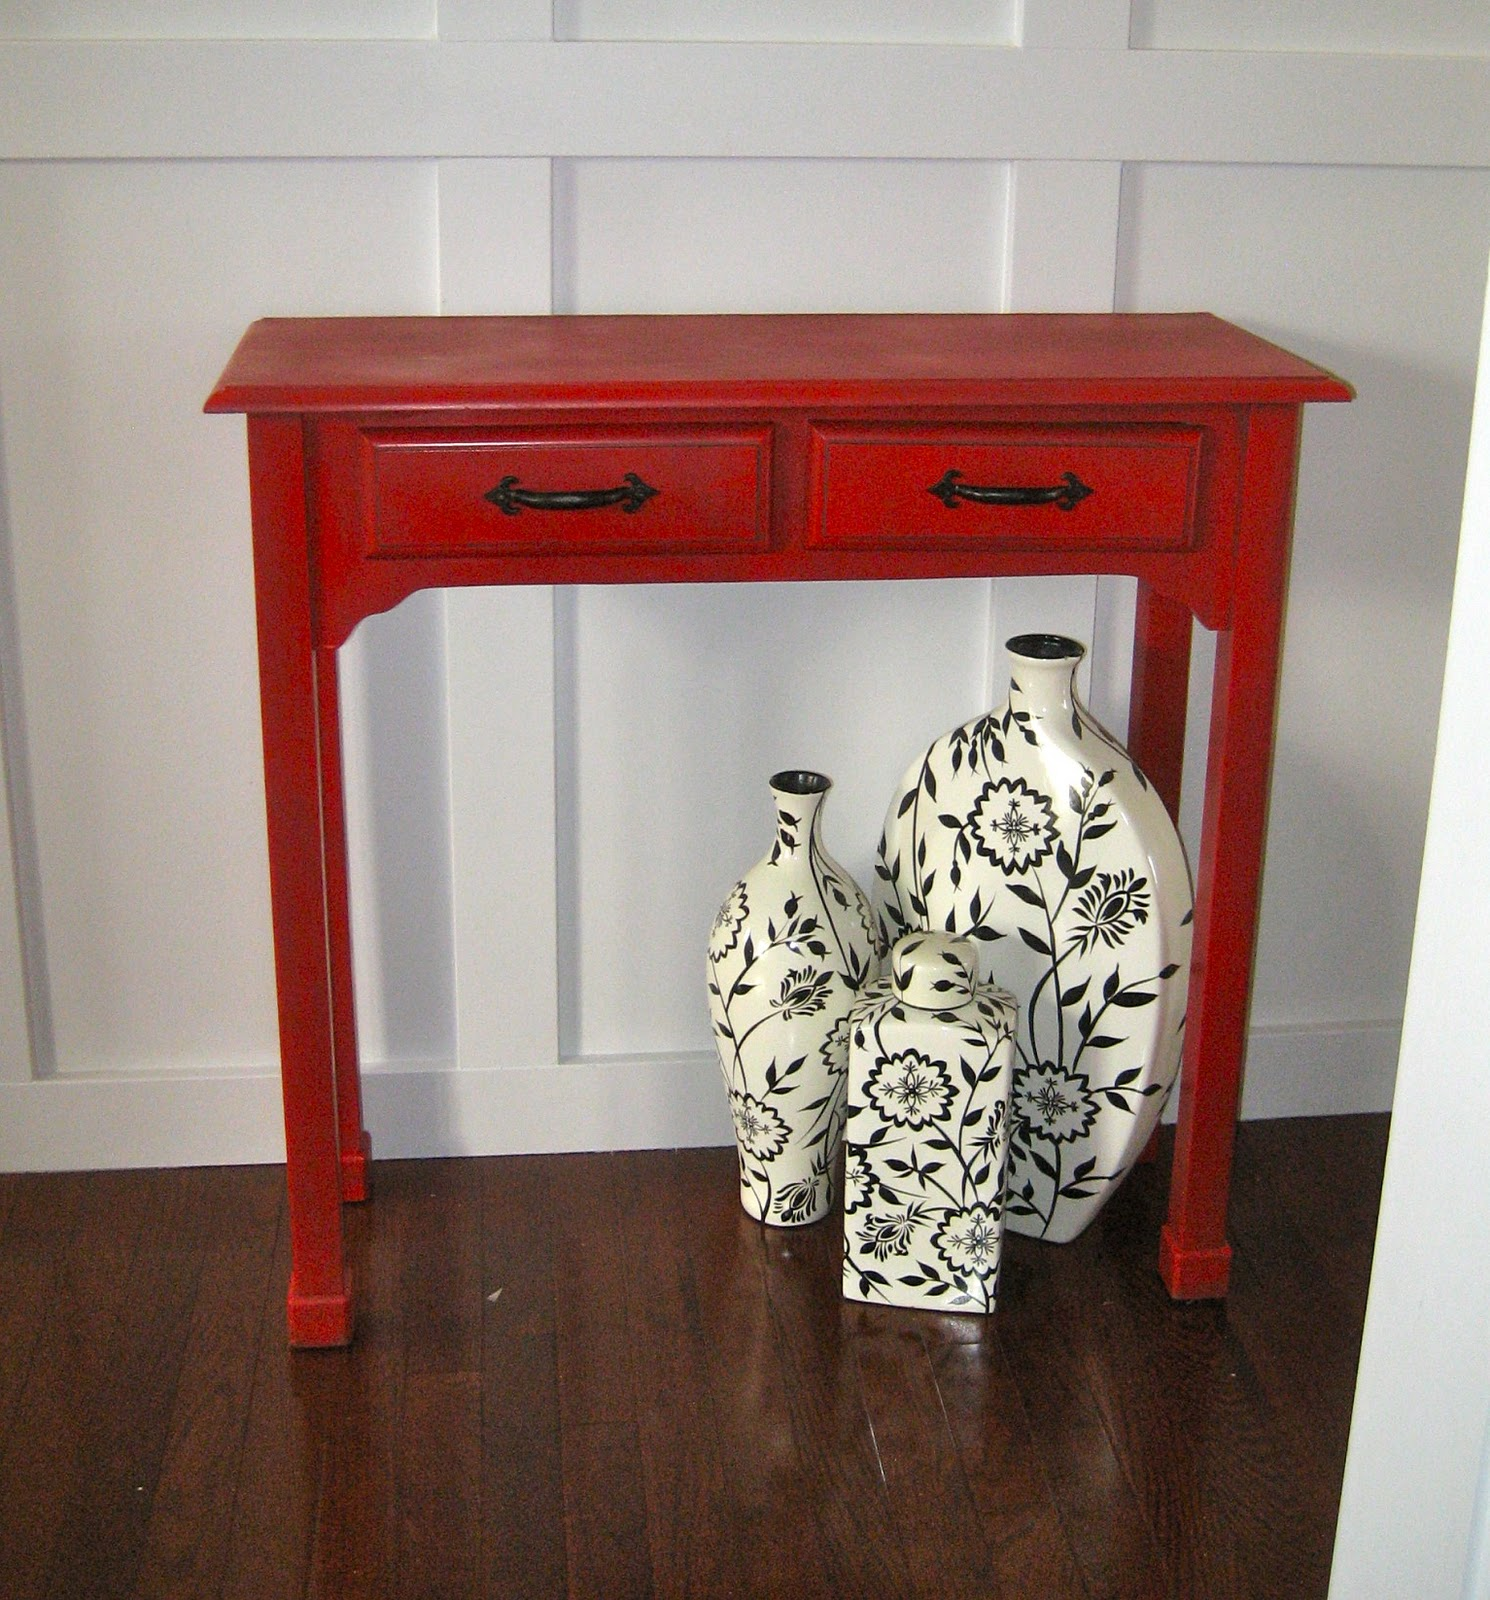 remodelaholic red painted and glazed accent table img diy ideas dorm wood top end metal console reclaimed orlando clearance tiffany lamps sturdy legs simple plans coastal bathroom